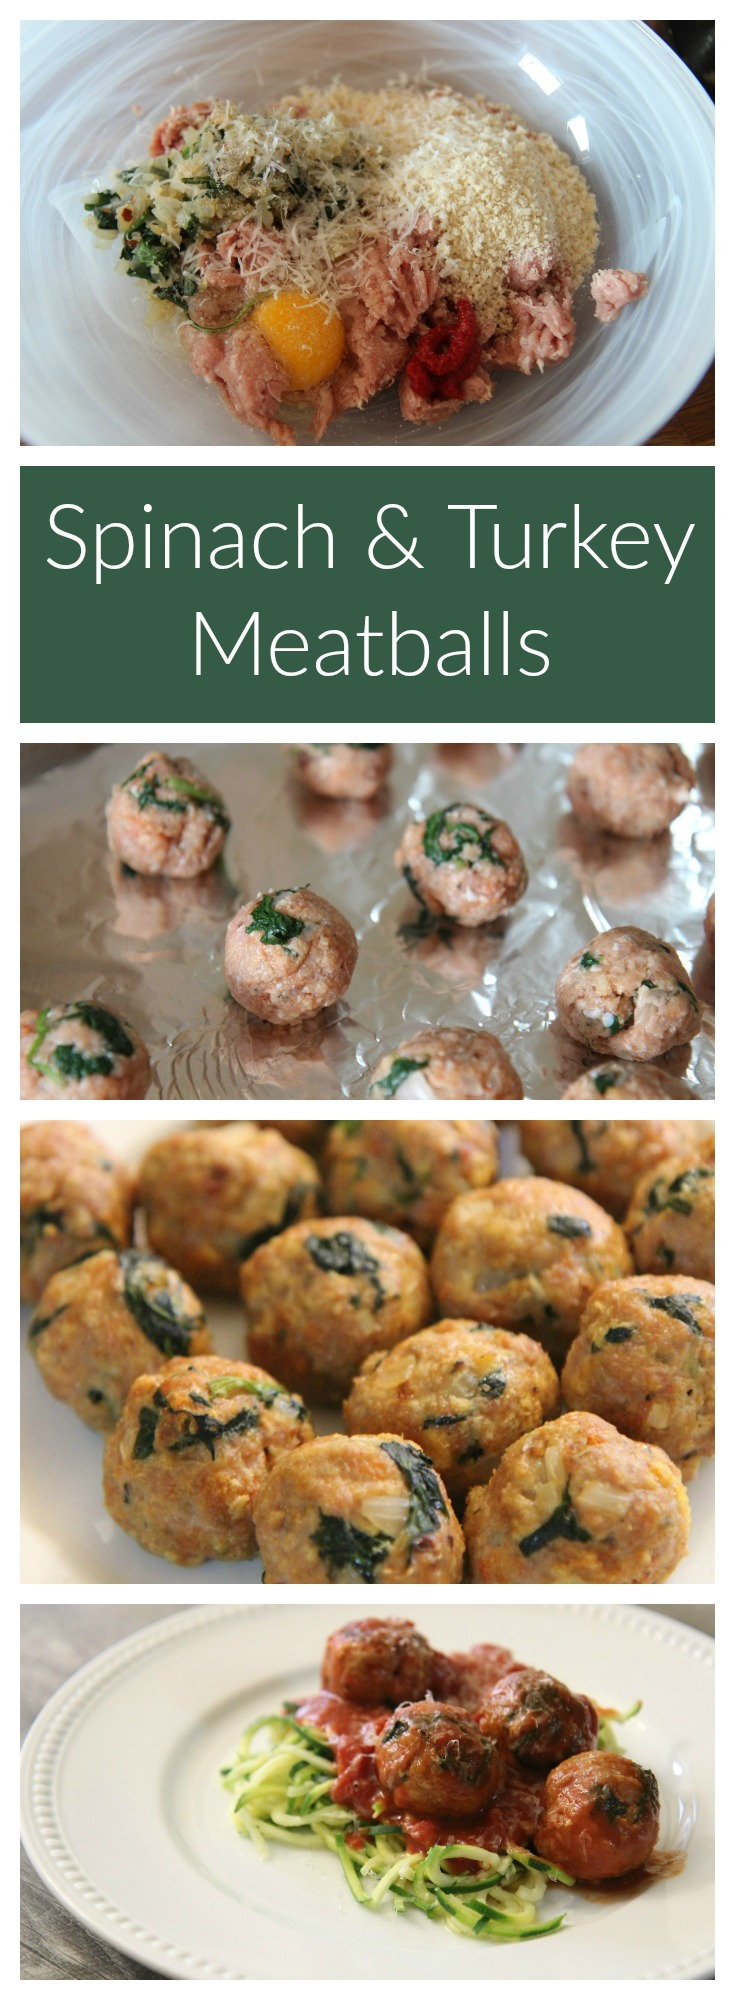 Spinach and Turkey Meatballs   Cooked by Julie